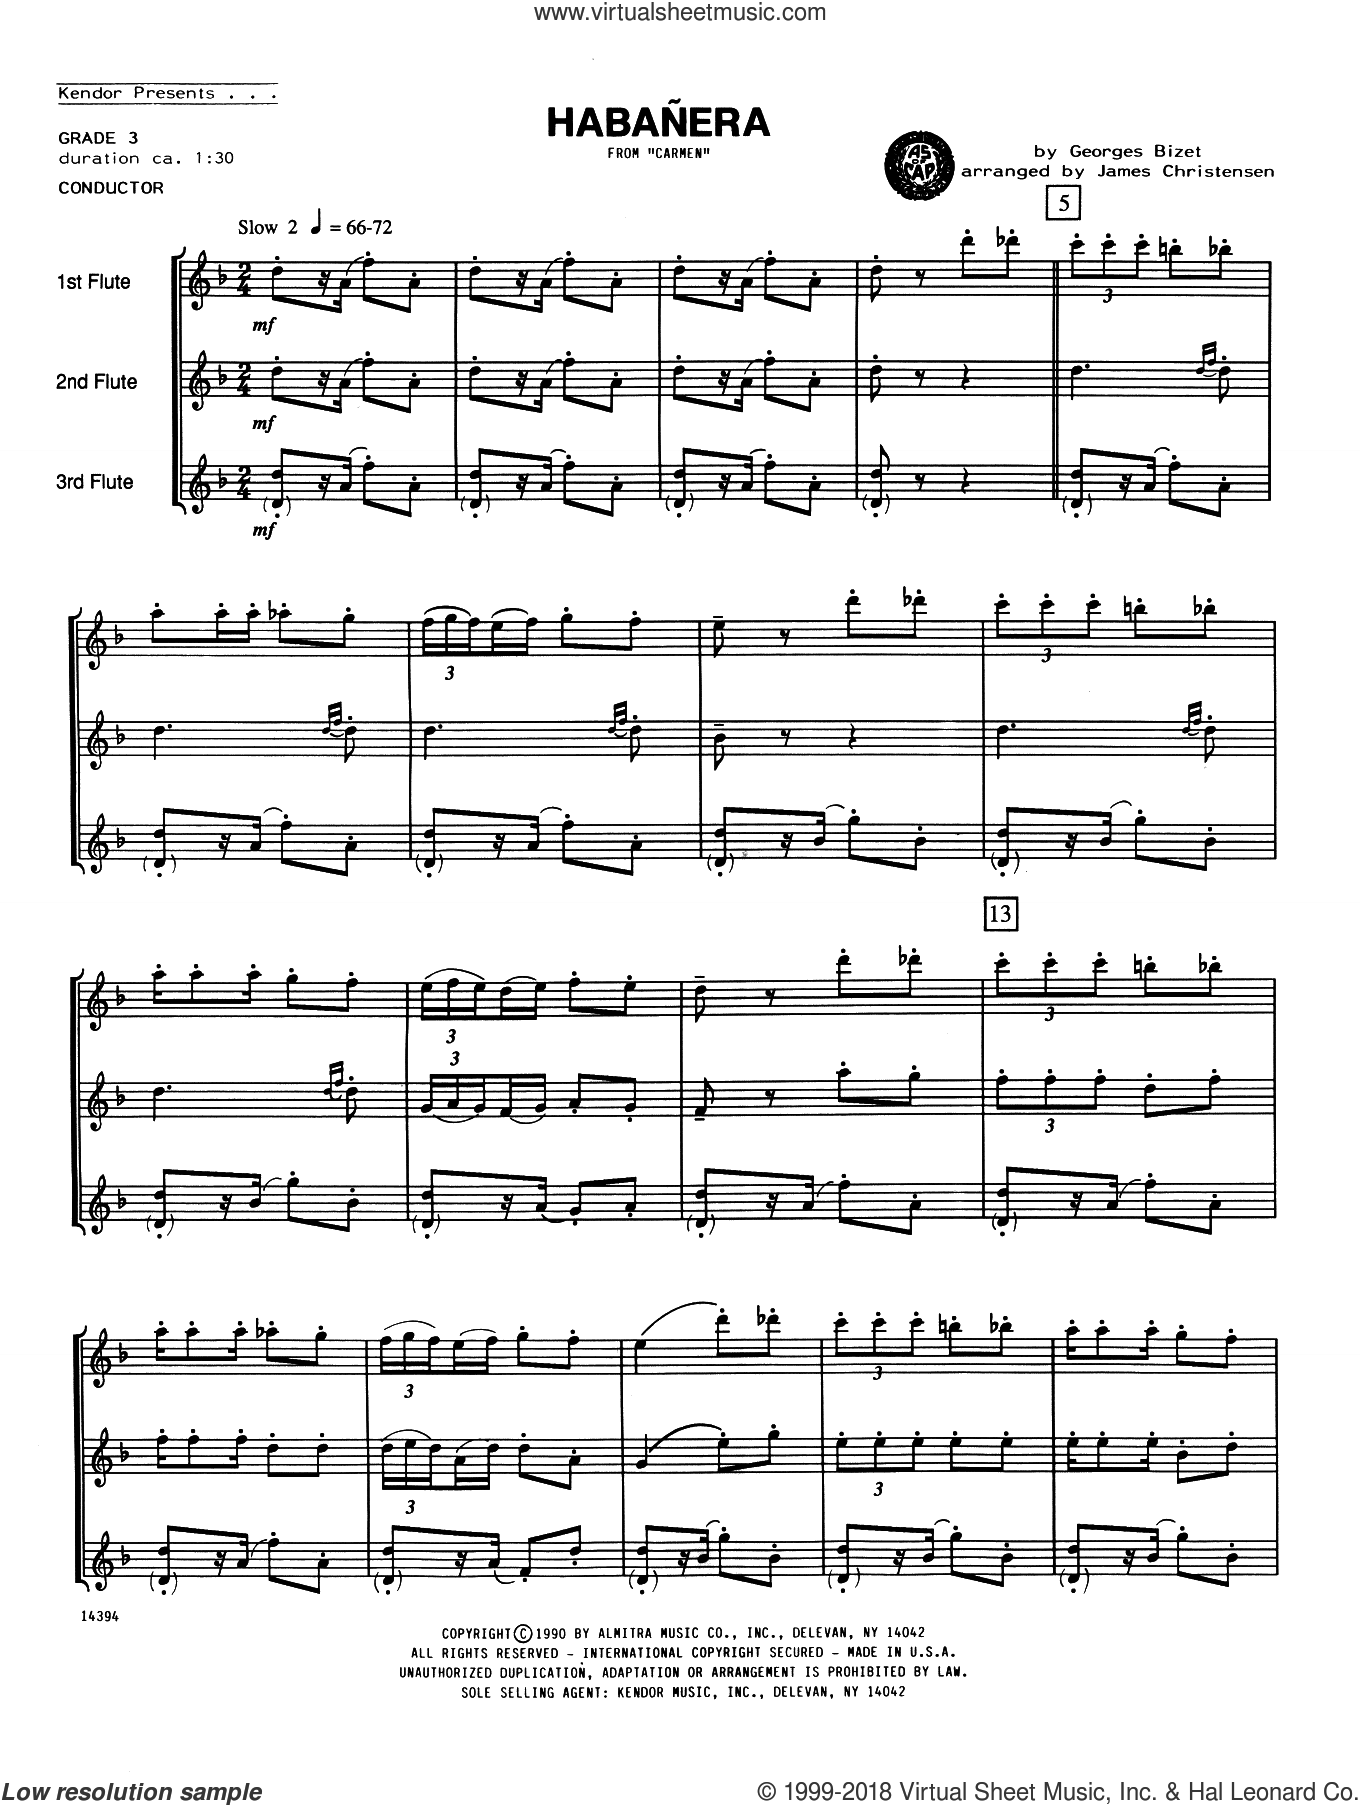 Habanera (from Carmen) (COMPLETE) sheet music for flute trio by Georges Bizet and James Christensen, intermediate flute trio. Score Image Preview.